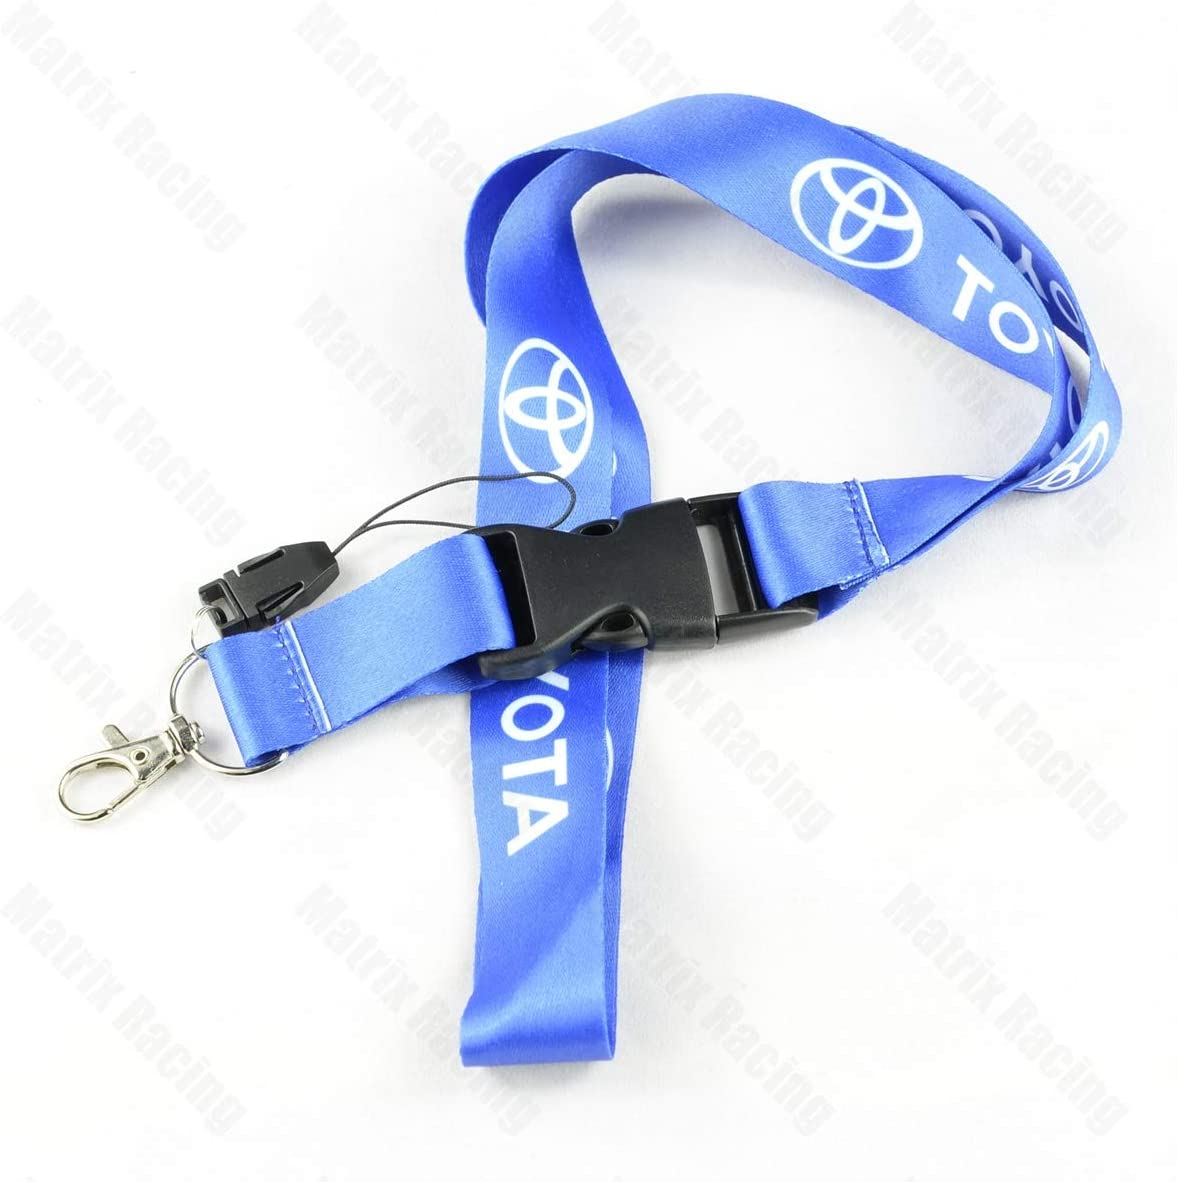 Blue Hedges Racing JDM Style Cellphone Lanyard Racing Car Keychain ID Card Neck Strap for Toyota Cars Camry Corolla RAV4 Highlander Prius Sienna 4 Colors